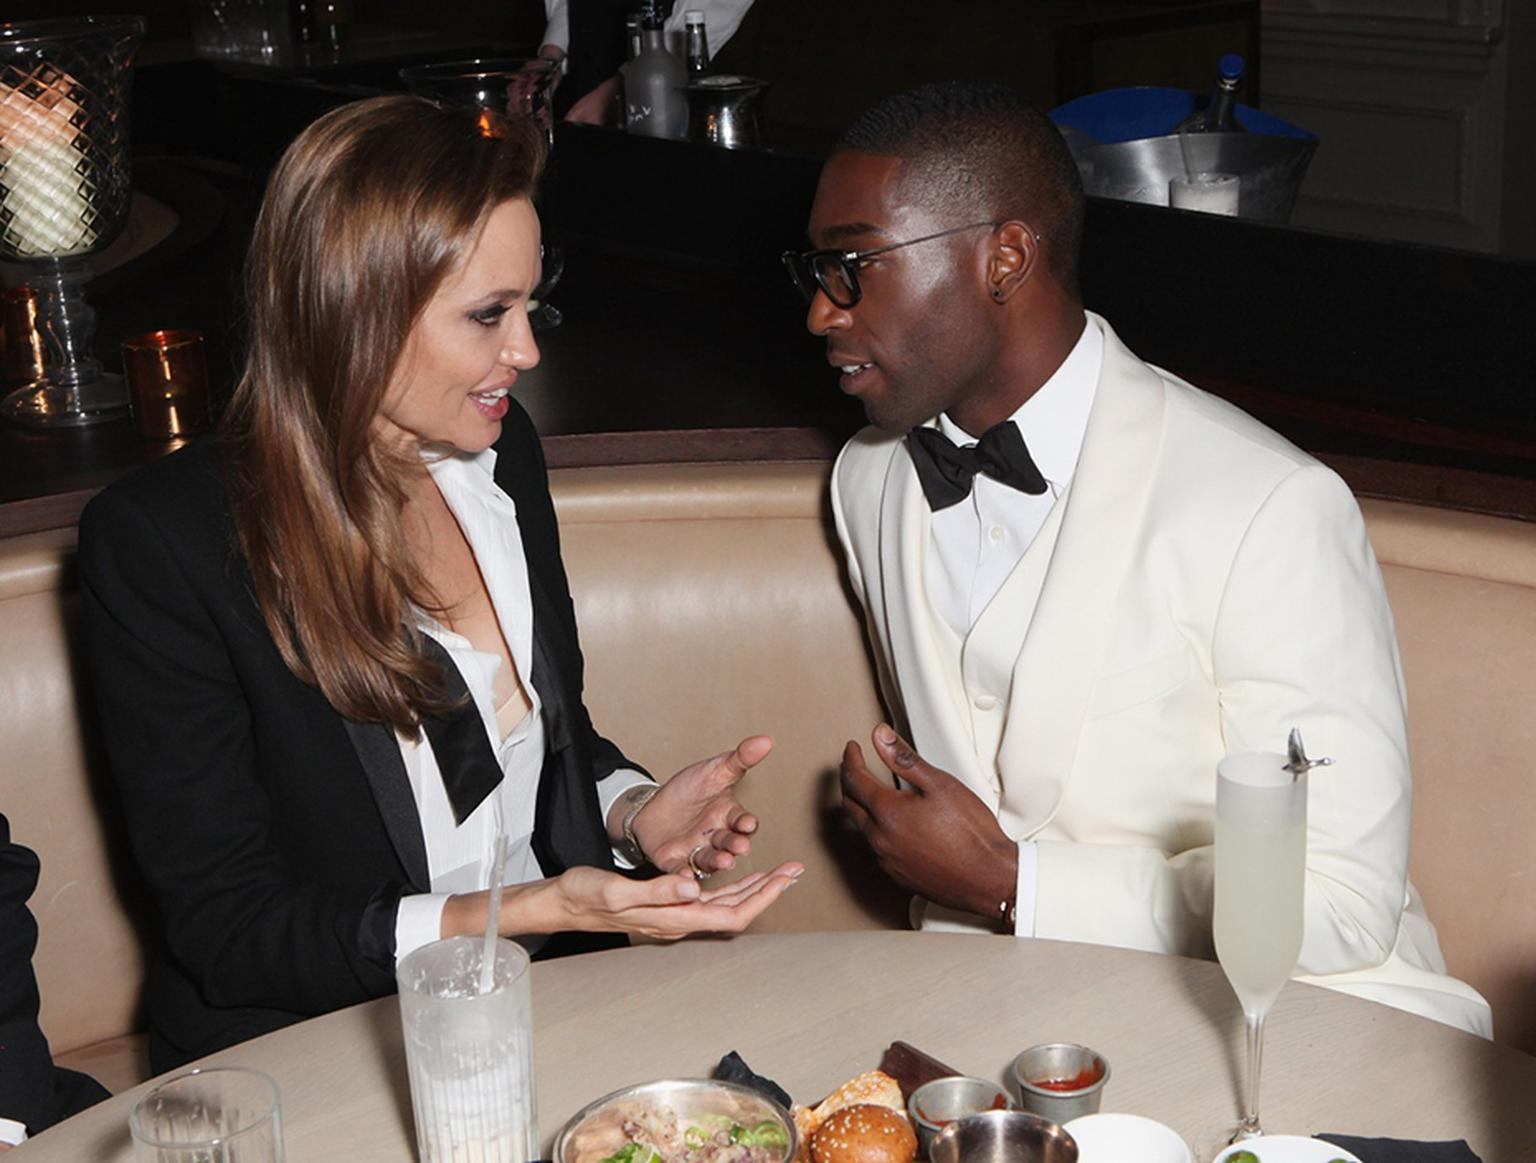 Deep in conversation with the sharply dressed Tinie Tempah, Angelina Jolie gave a flash of her diamond watch tucked under her shirt cuff